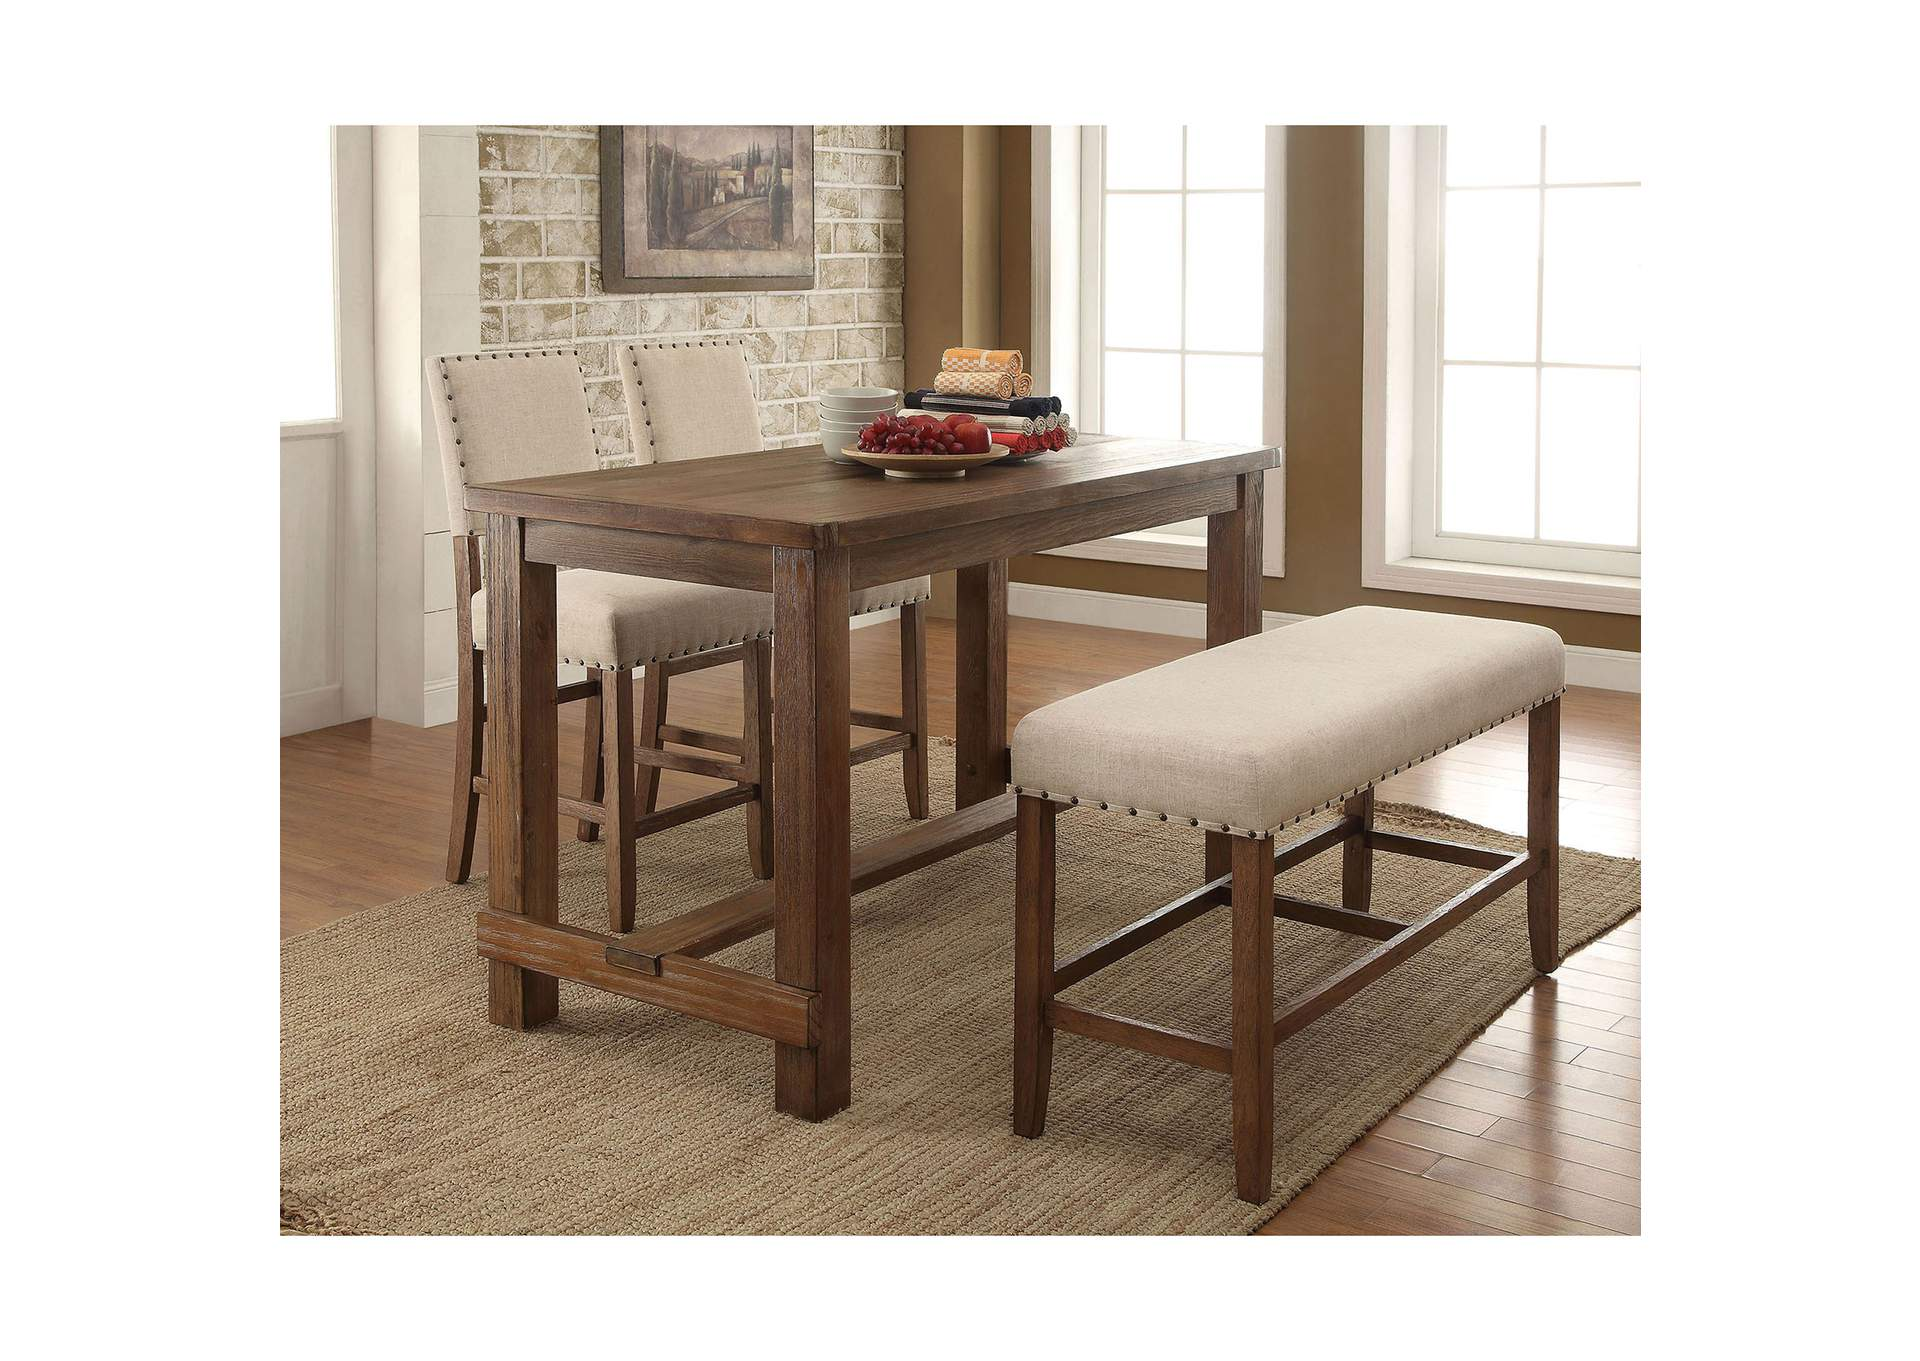 Sania Rustic Oak Counter Height Table W Bench And 2 Chairs Furniture